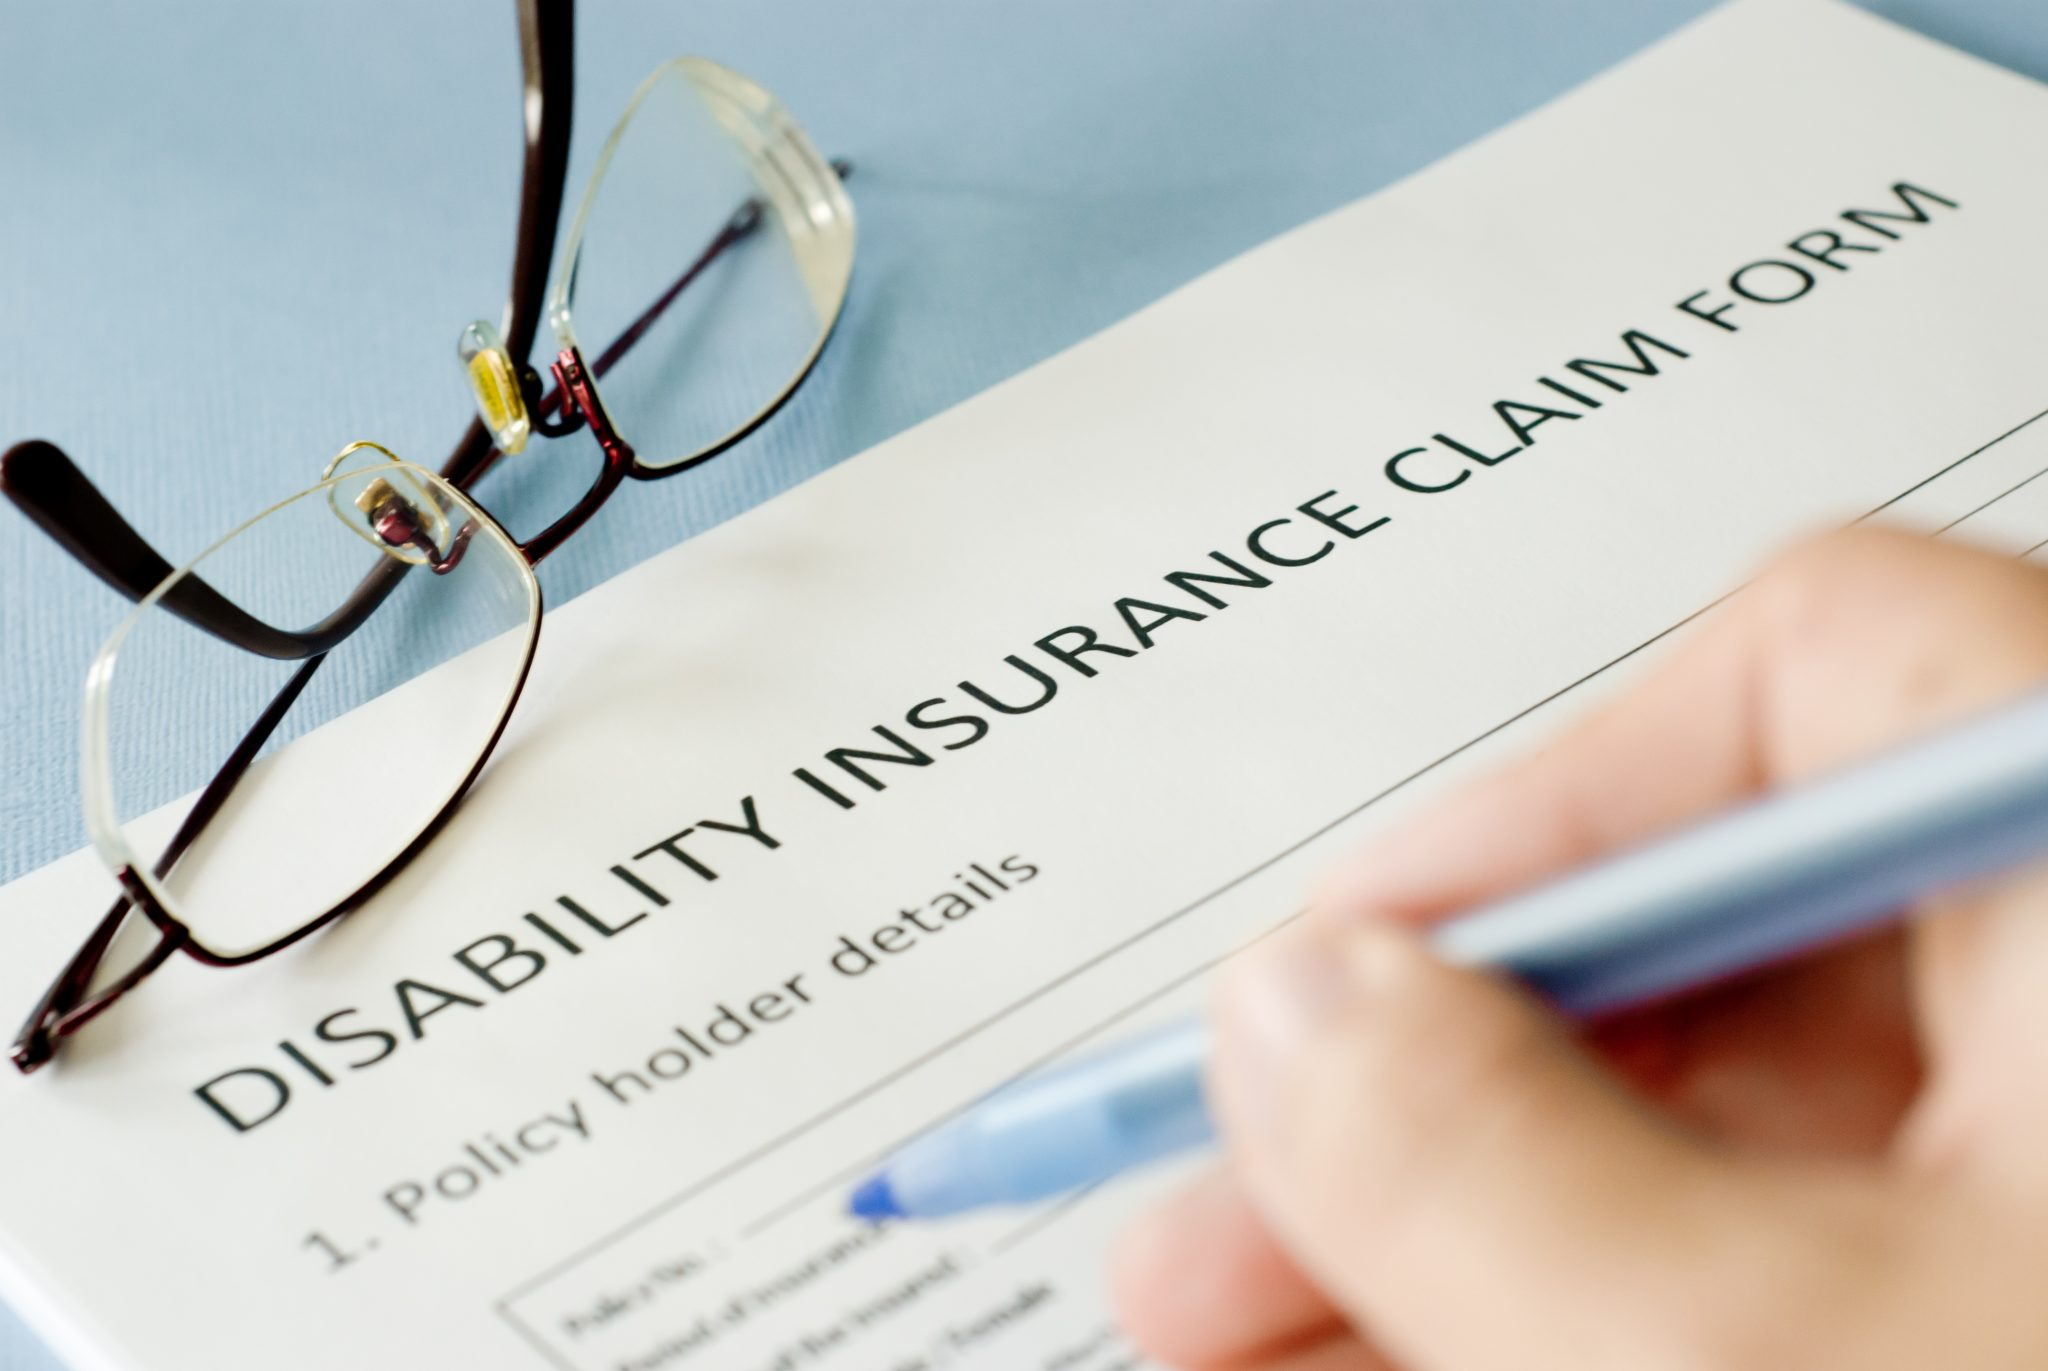 signing insurance claim form on blue background